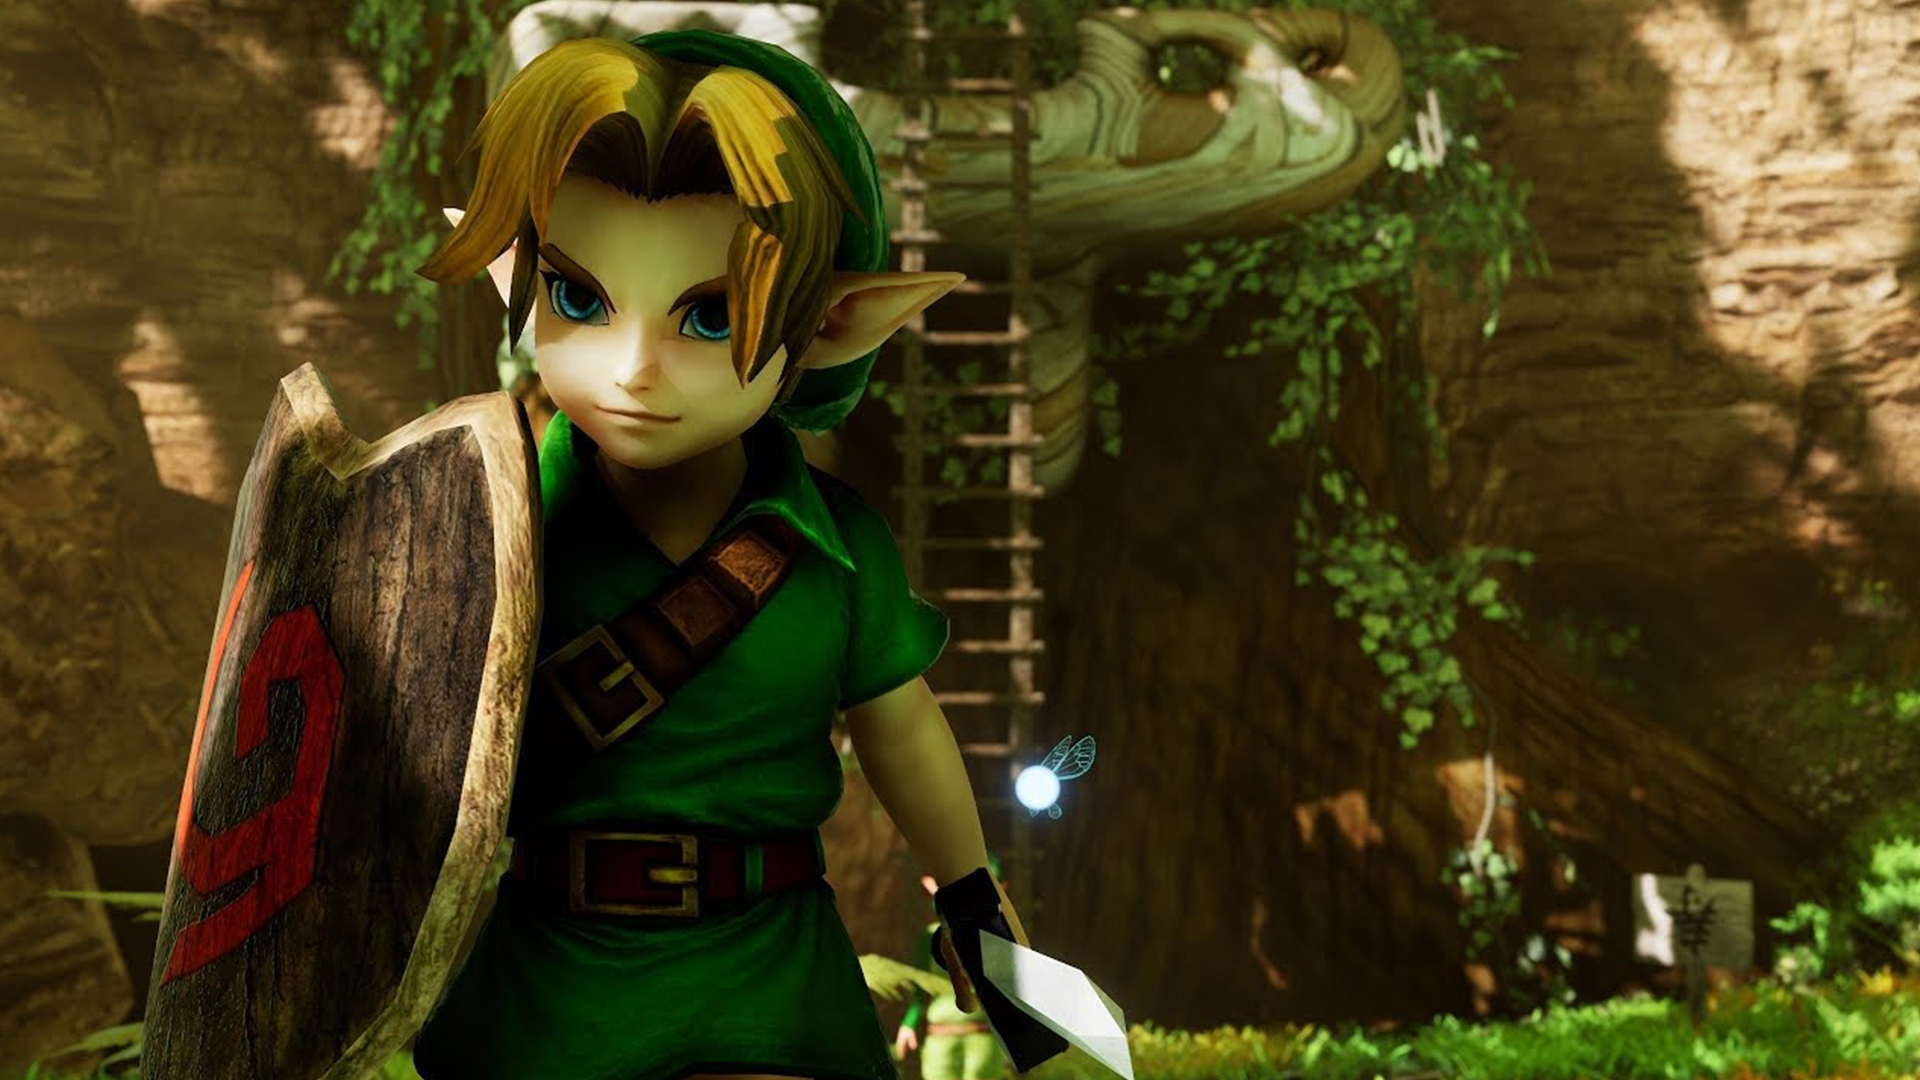 Zelda: Ocarina of Time Unreal remake now has a completely playable first dungeon | PCGamesN